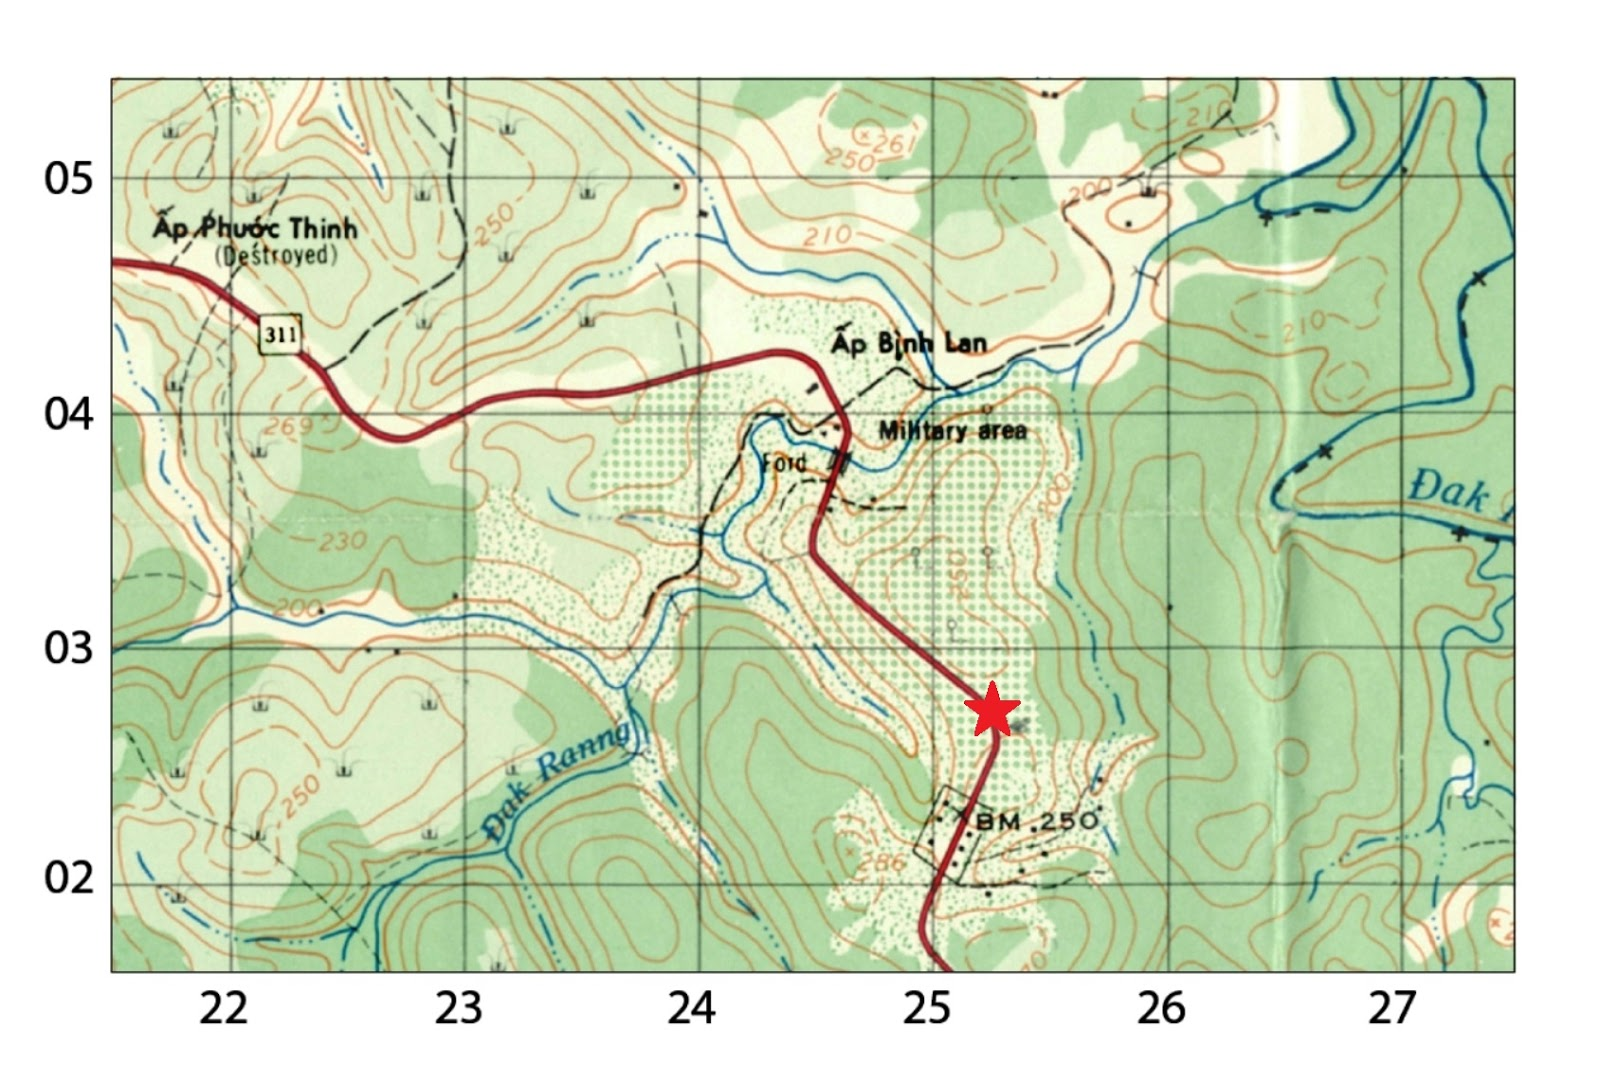 click on map sheet to enlarge